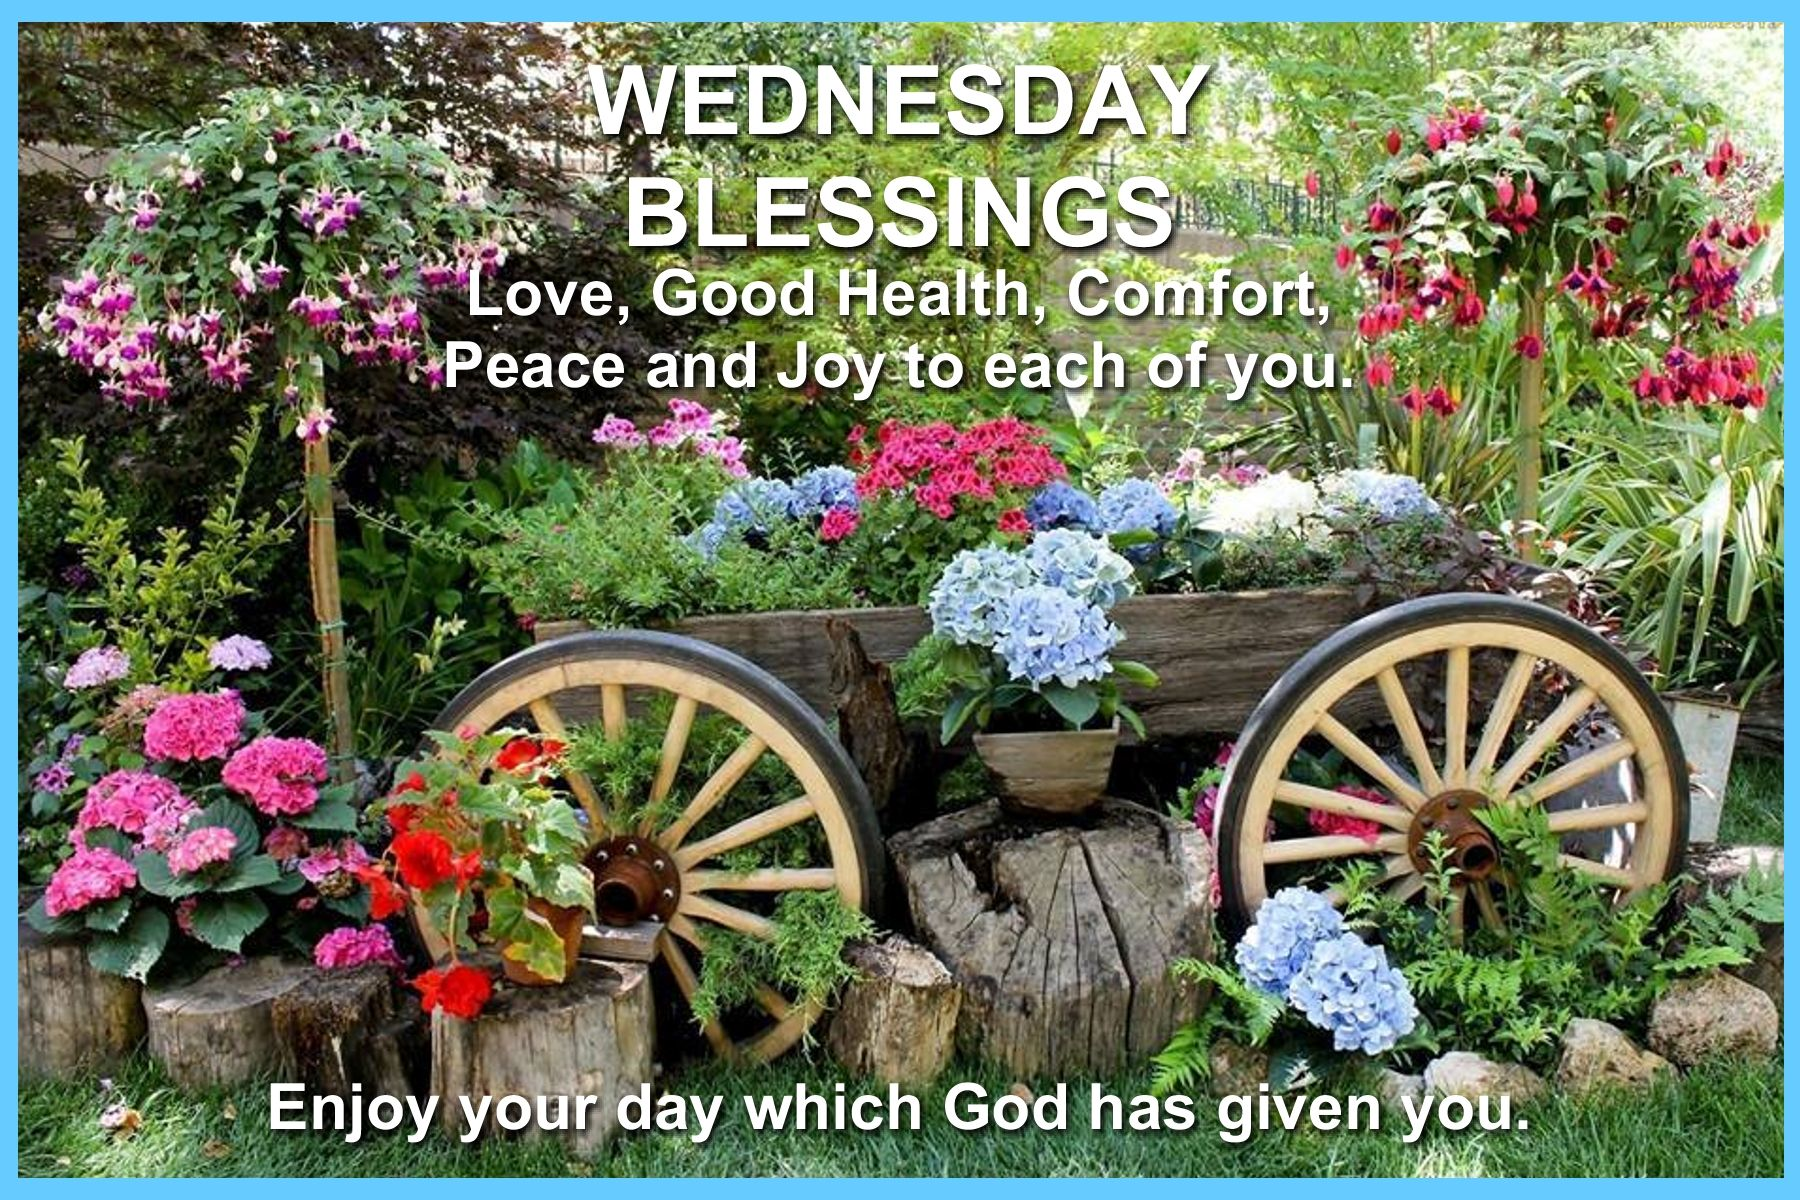 Pin by rosa well on wednesday blessings pinterest wednesday wednesday greetings patio ideas landscaping ideas blessings backyards alter patios landscapes horse drawn wagon kristyandbryce Images